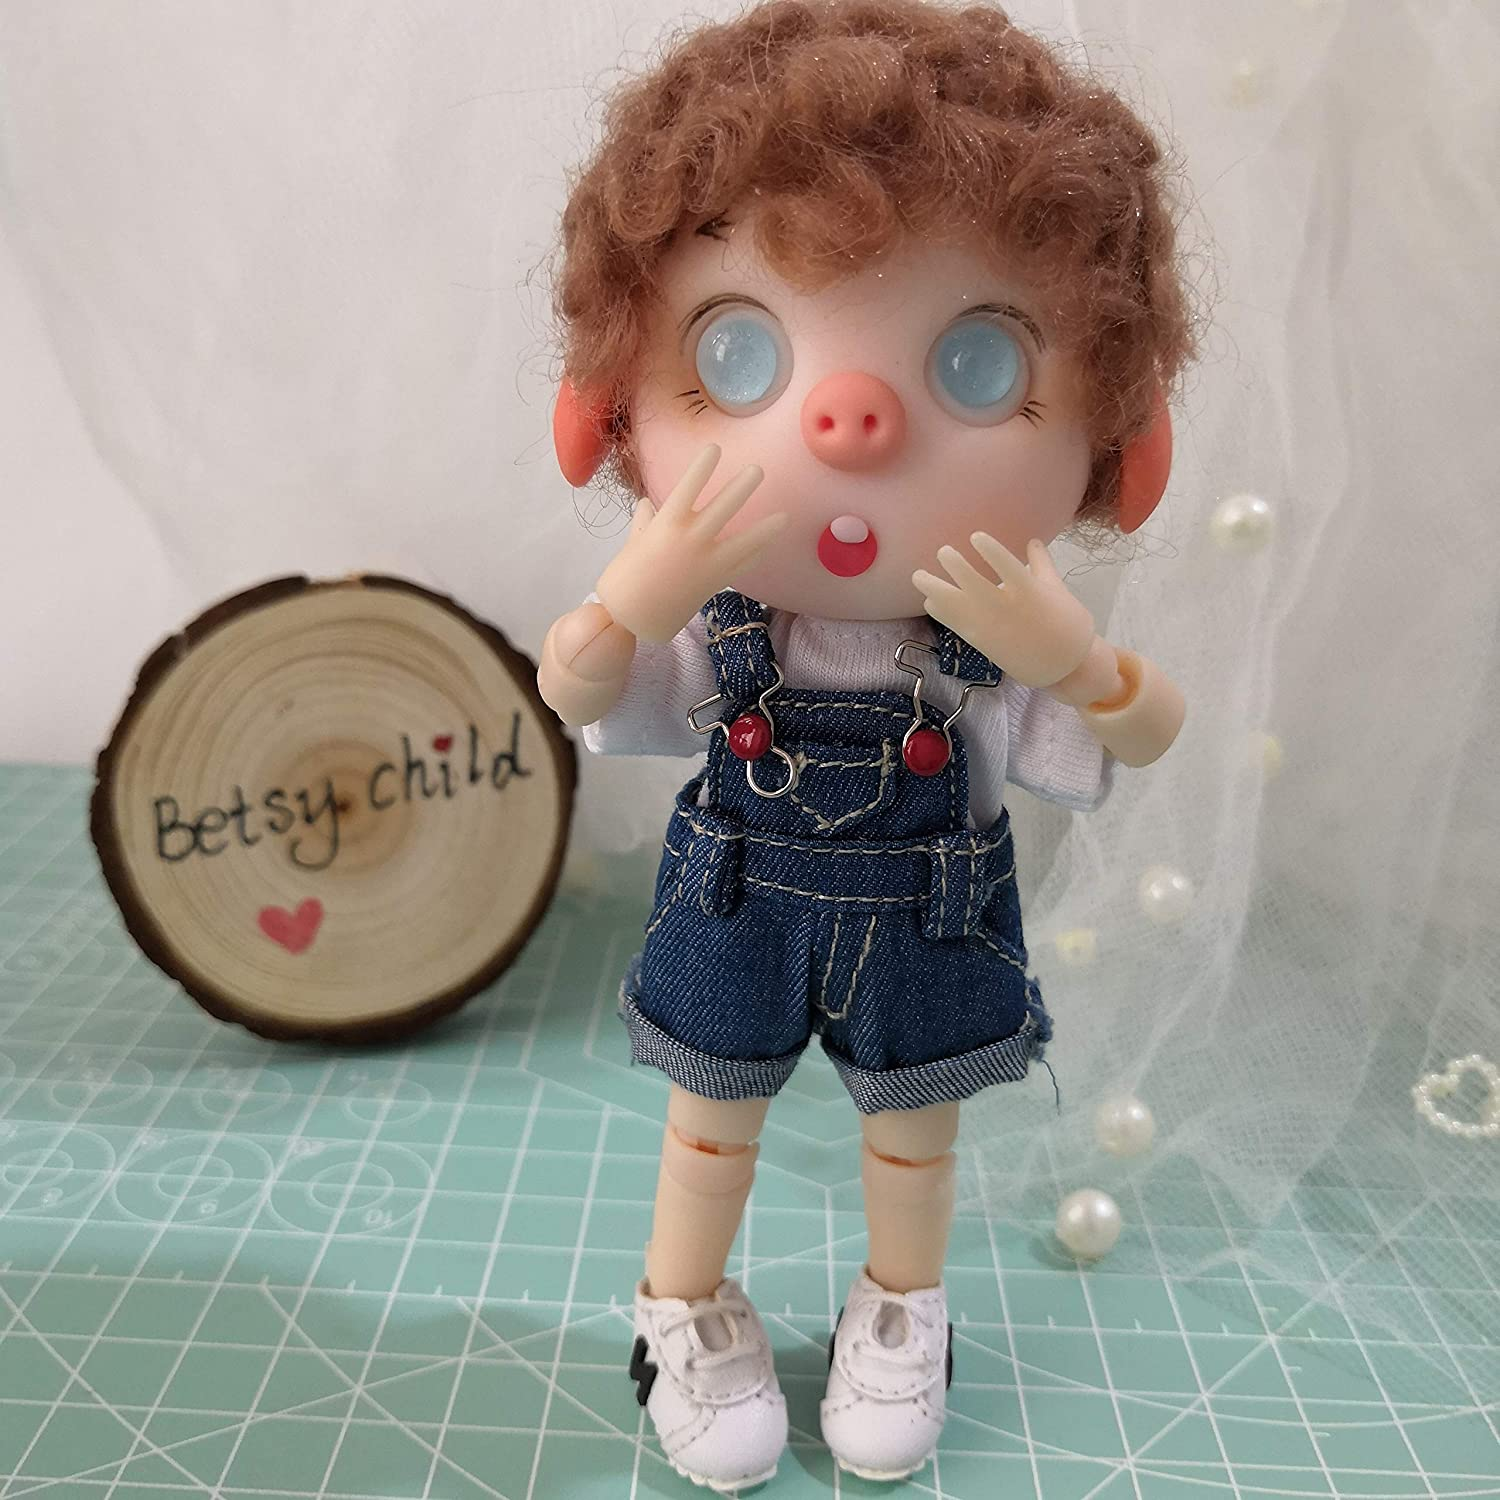 13 cm BJD doll jointed doll from Betsy Child OB11 resin doll